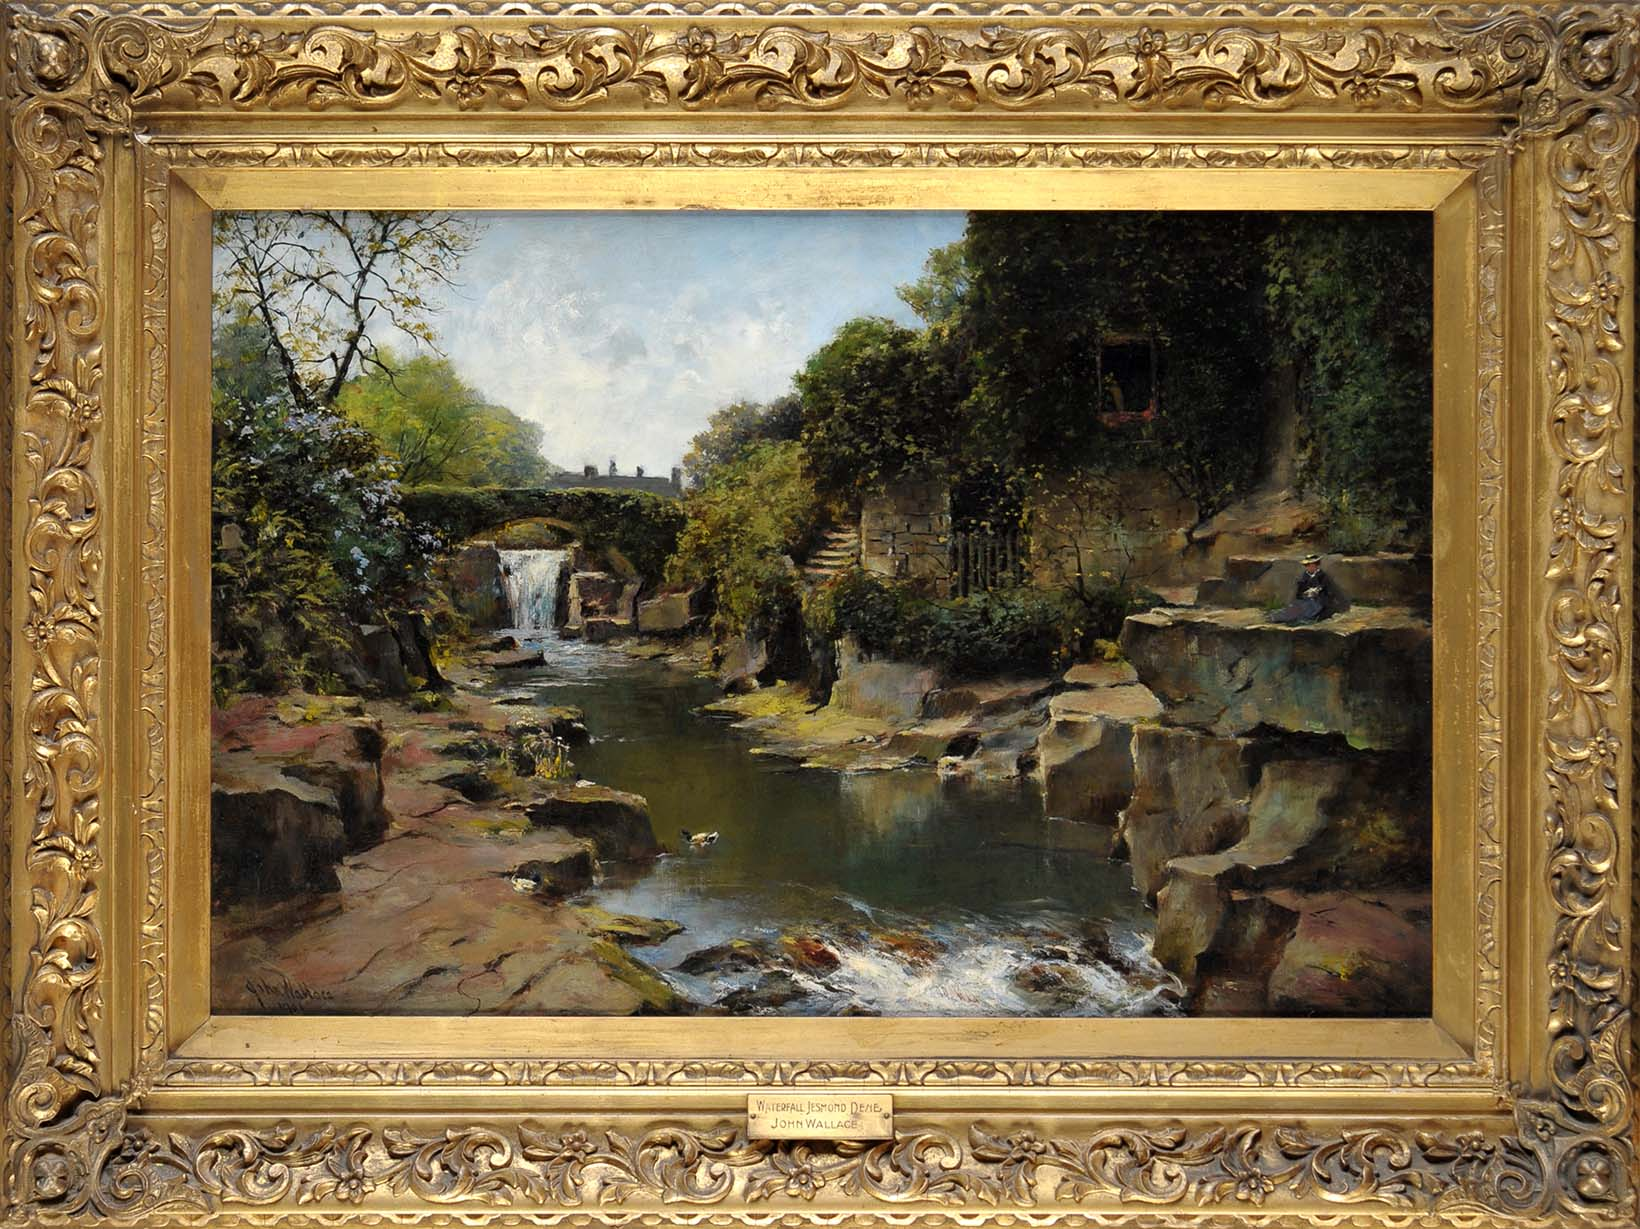 John Wallace (1841-1905) WATERFALL JESMOND DENE signed and dated 1901 oil on canvas 49.5 x 75cms; 19